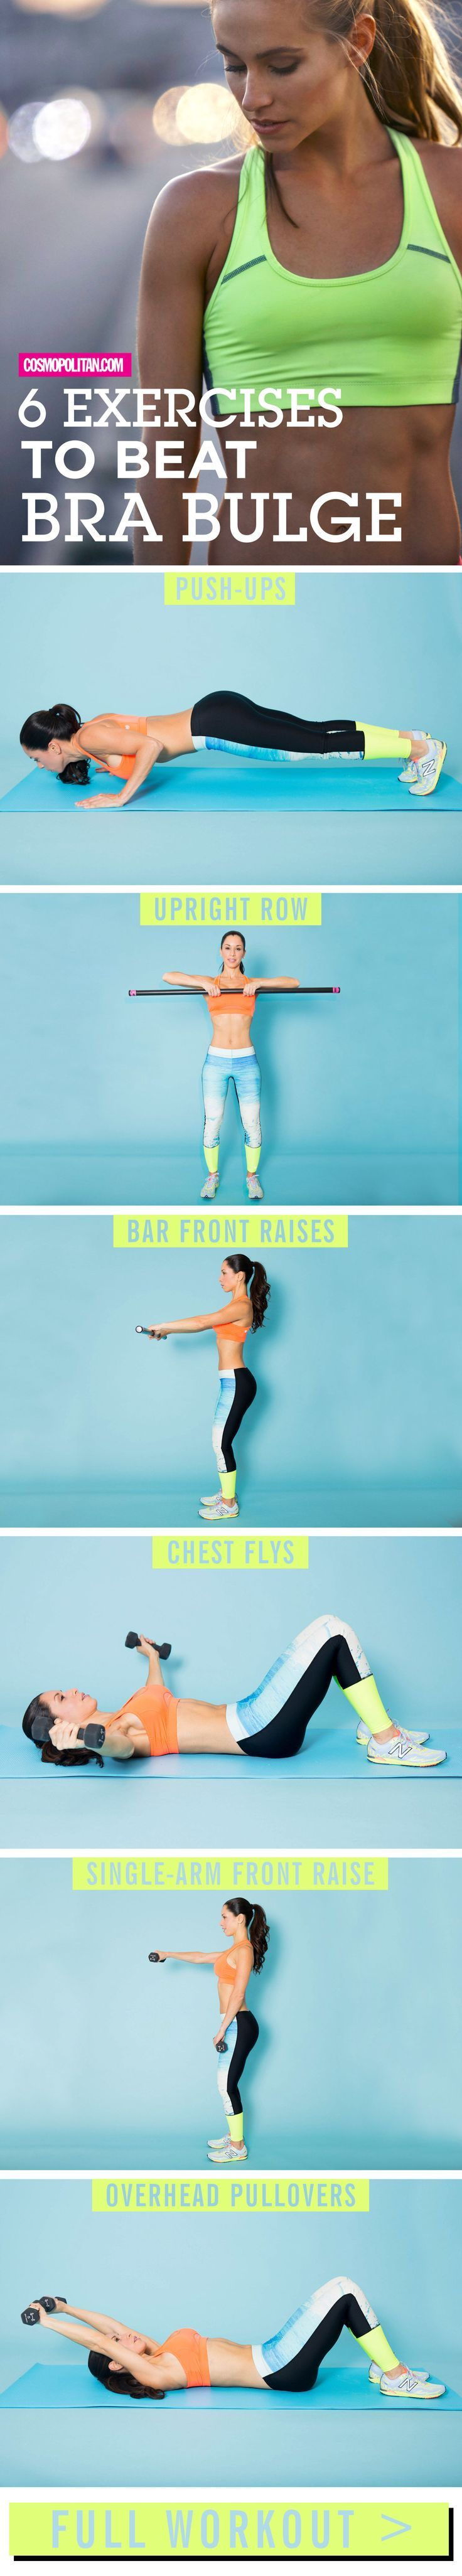 Finally: A way to target your awkward armpit area. #exercise #exercisetips #fitnesstips #fitspo #workout #workouts #workouttips #abdominal #fitness